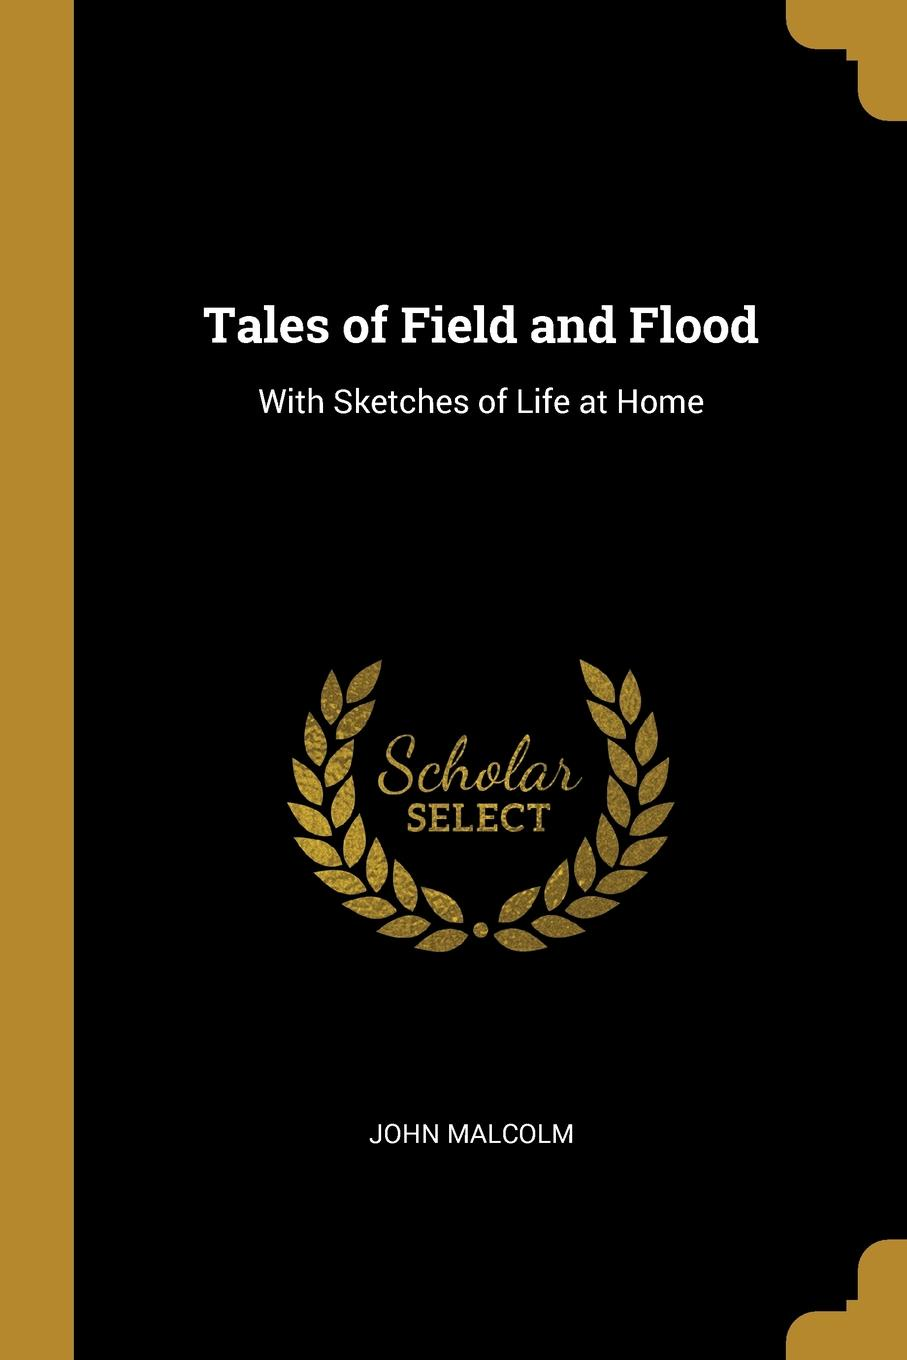 John Malcolm. Tales of Field and Flood. With Sketches of Life at Home